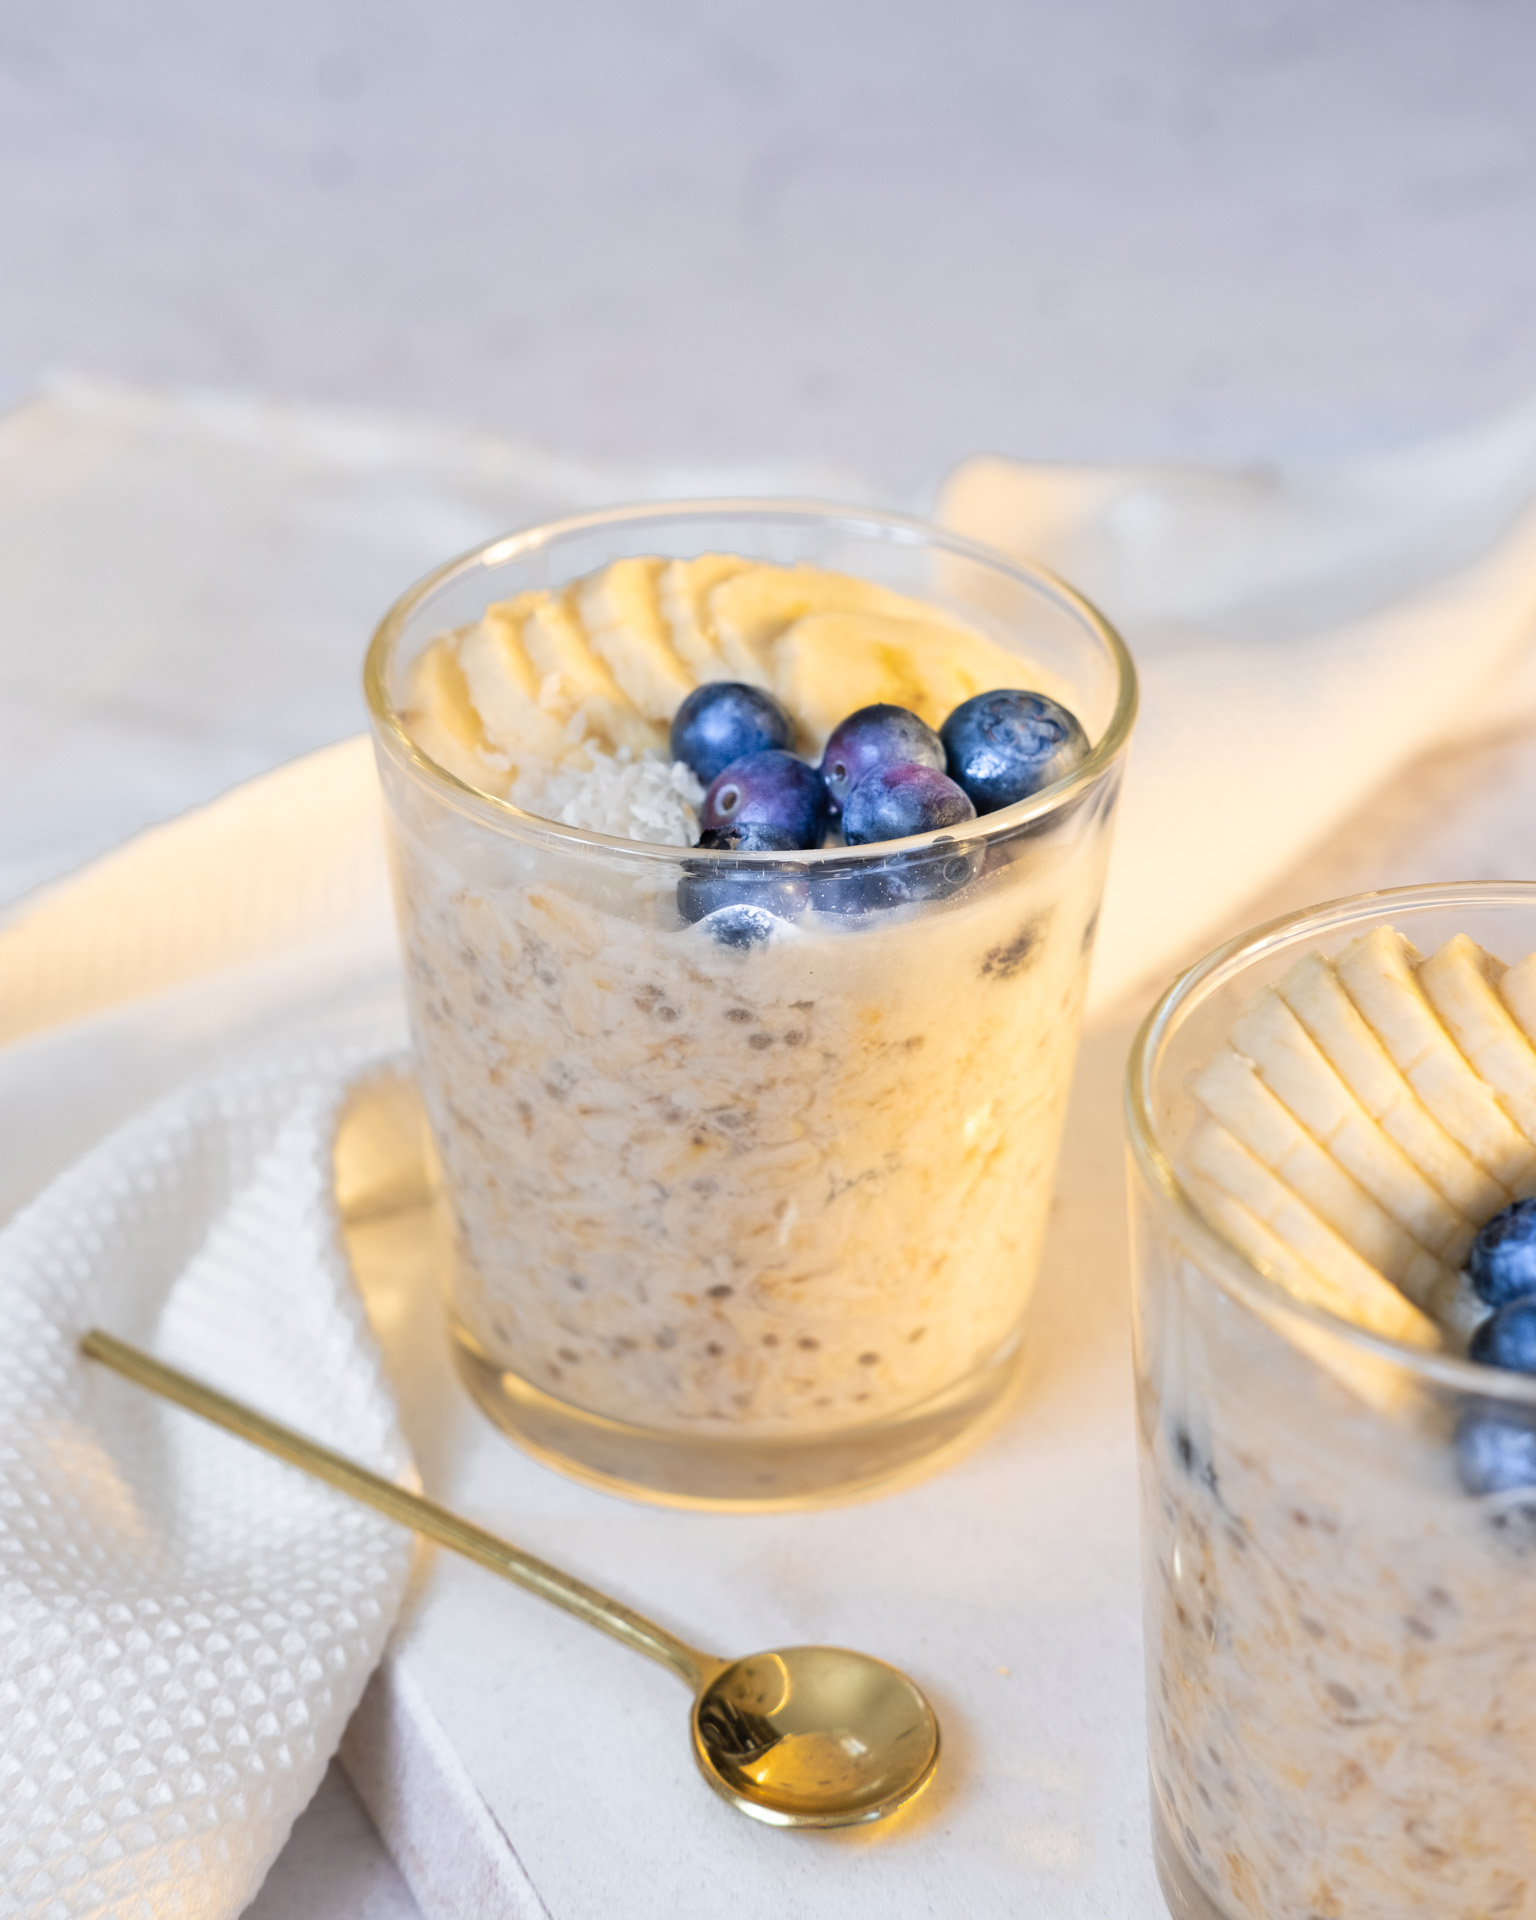 Overnight oats with blueberries and banana